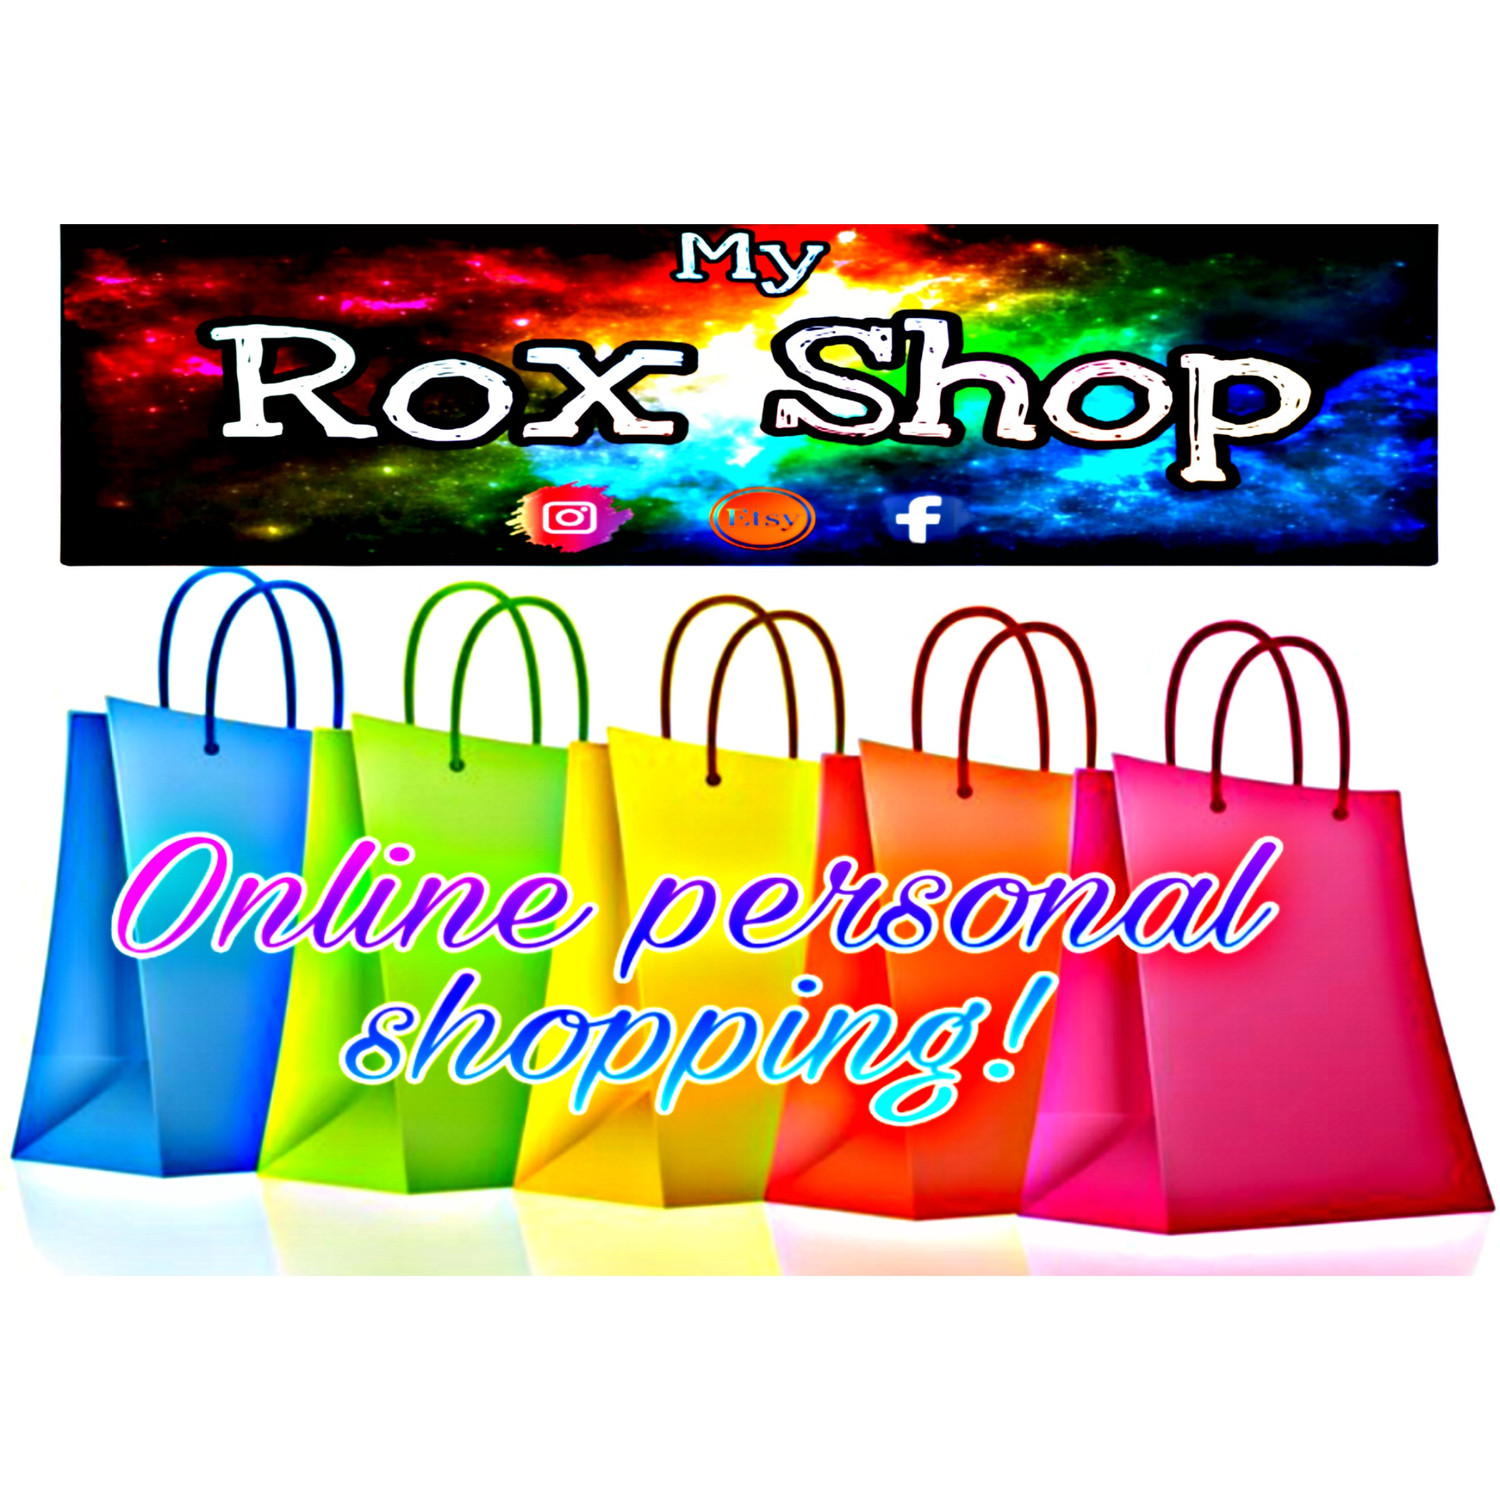 121 Online Personal Shopping